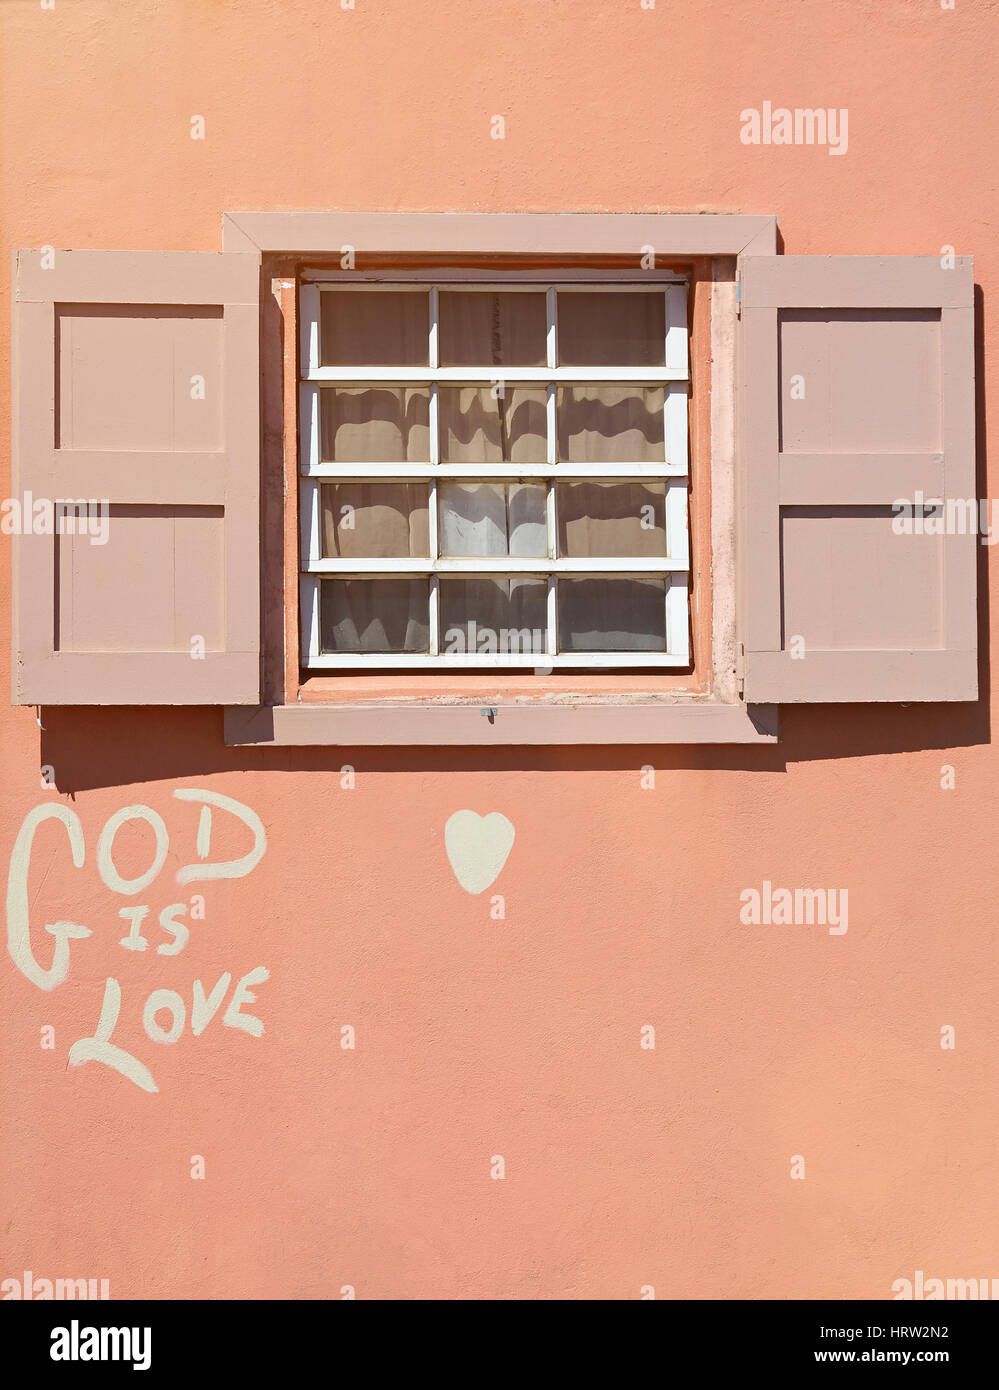 Wooden Window In Pink House Wall With Graffiti God Is Love Simple